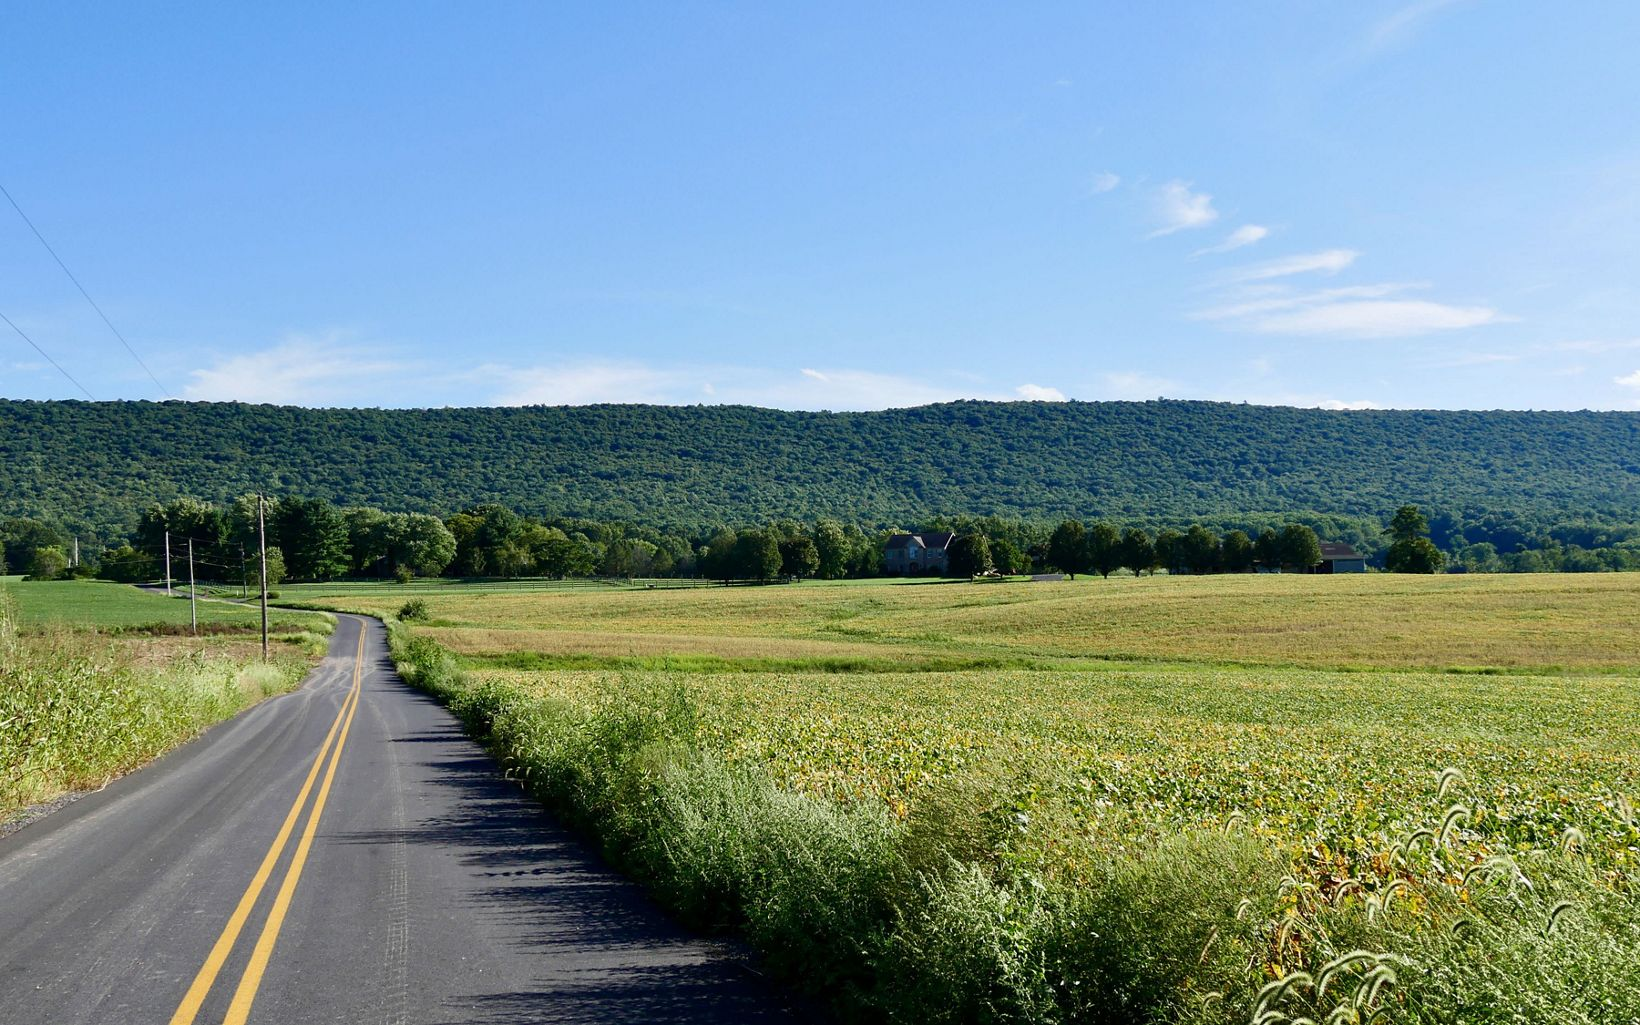 A two-lane blacktop road stretches into the distance between green fields. A heavily forested mountain rises in the background.